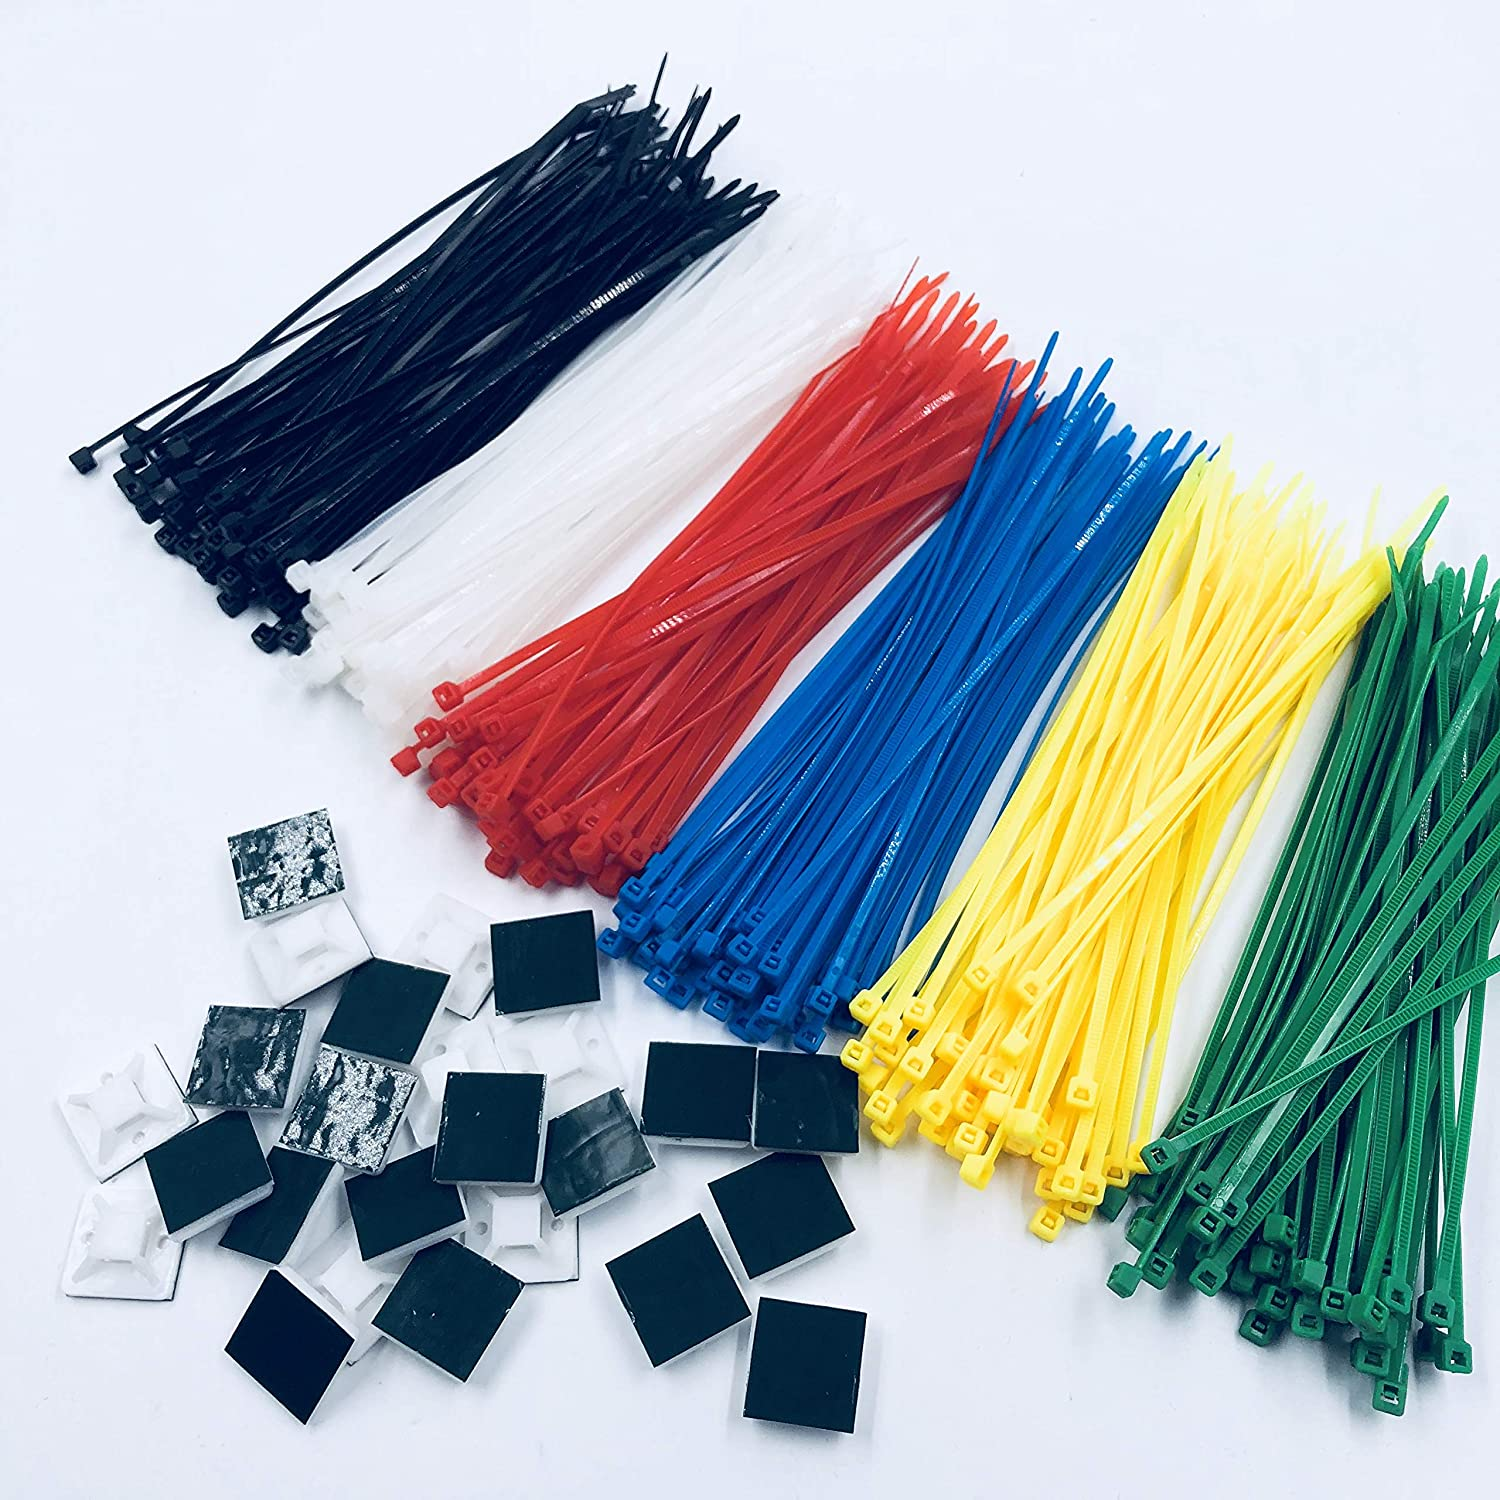 Nylon cable tie 6 kinds of color selection 15cm 100pcs and cable tie holder 25pcs red and blue